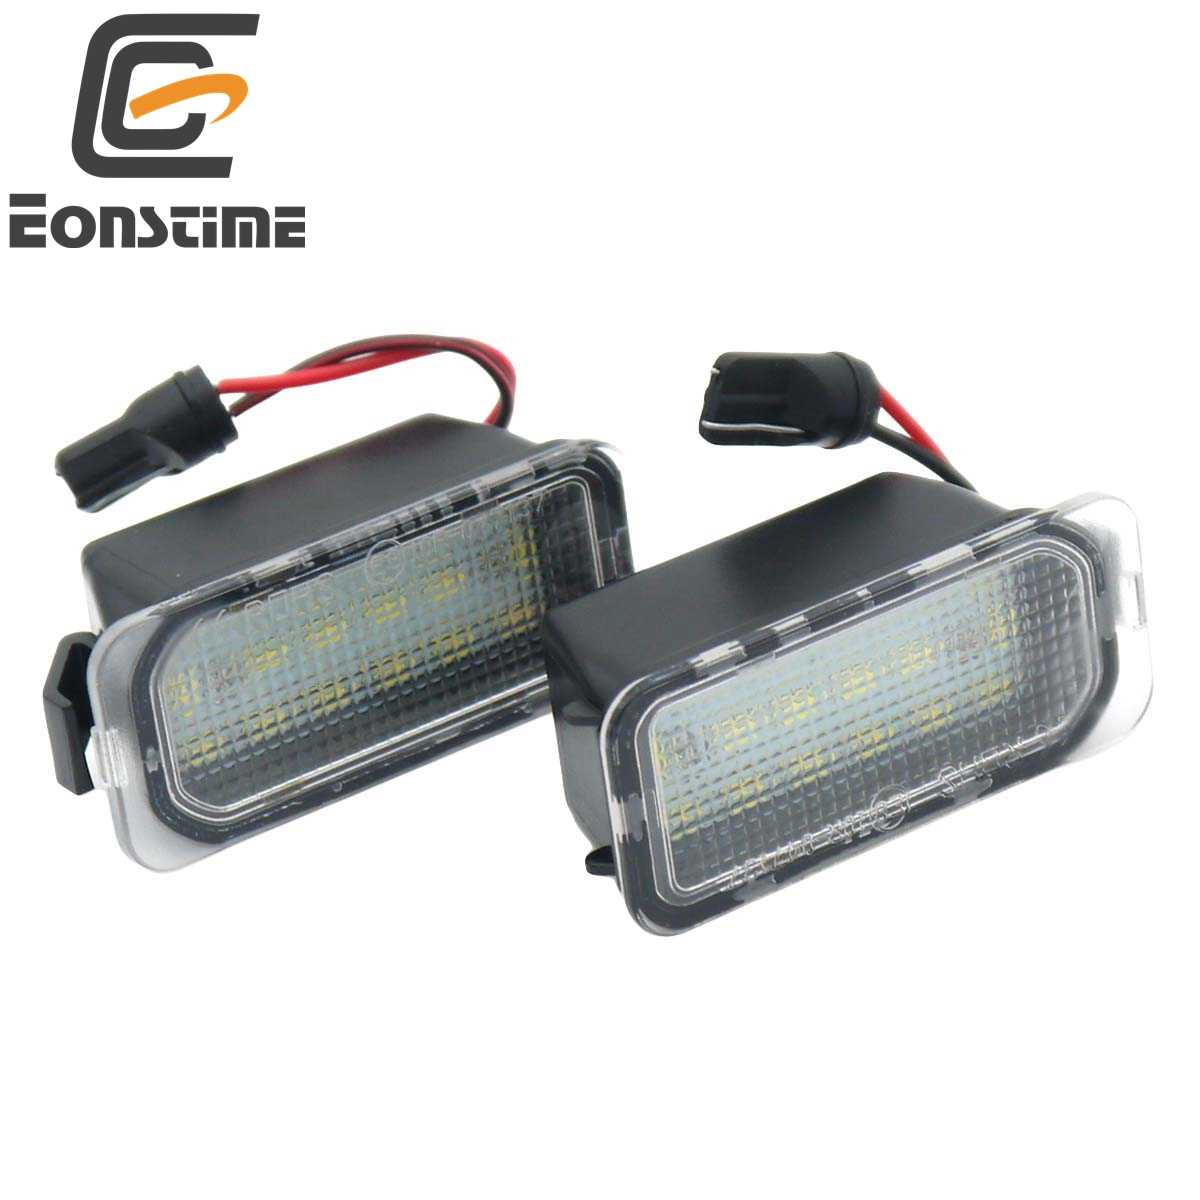 Eonstime 2Pcs 18SMD LED License Plate Number Light Lamp Error Free For Ford Fiesta JA8 Focus DA3 Focus DYB S-max C-max Mondeo white car no canbus error 18smd led license number plate light lamp for audi a3 s3 a4 s4 b6 b7 a6 s6 a8 q7 147